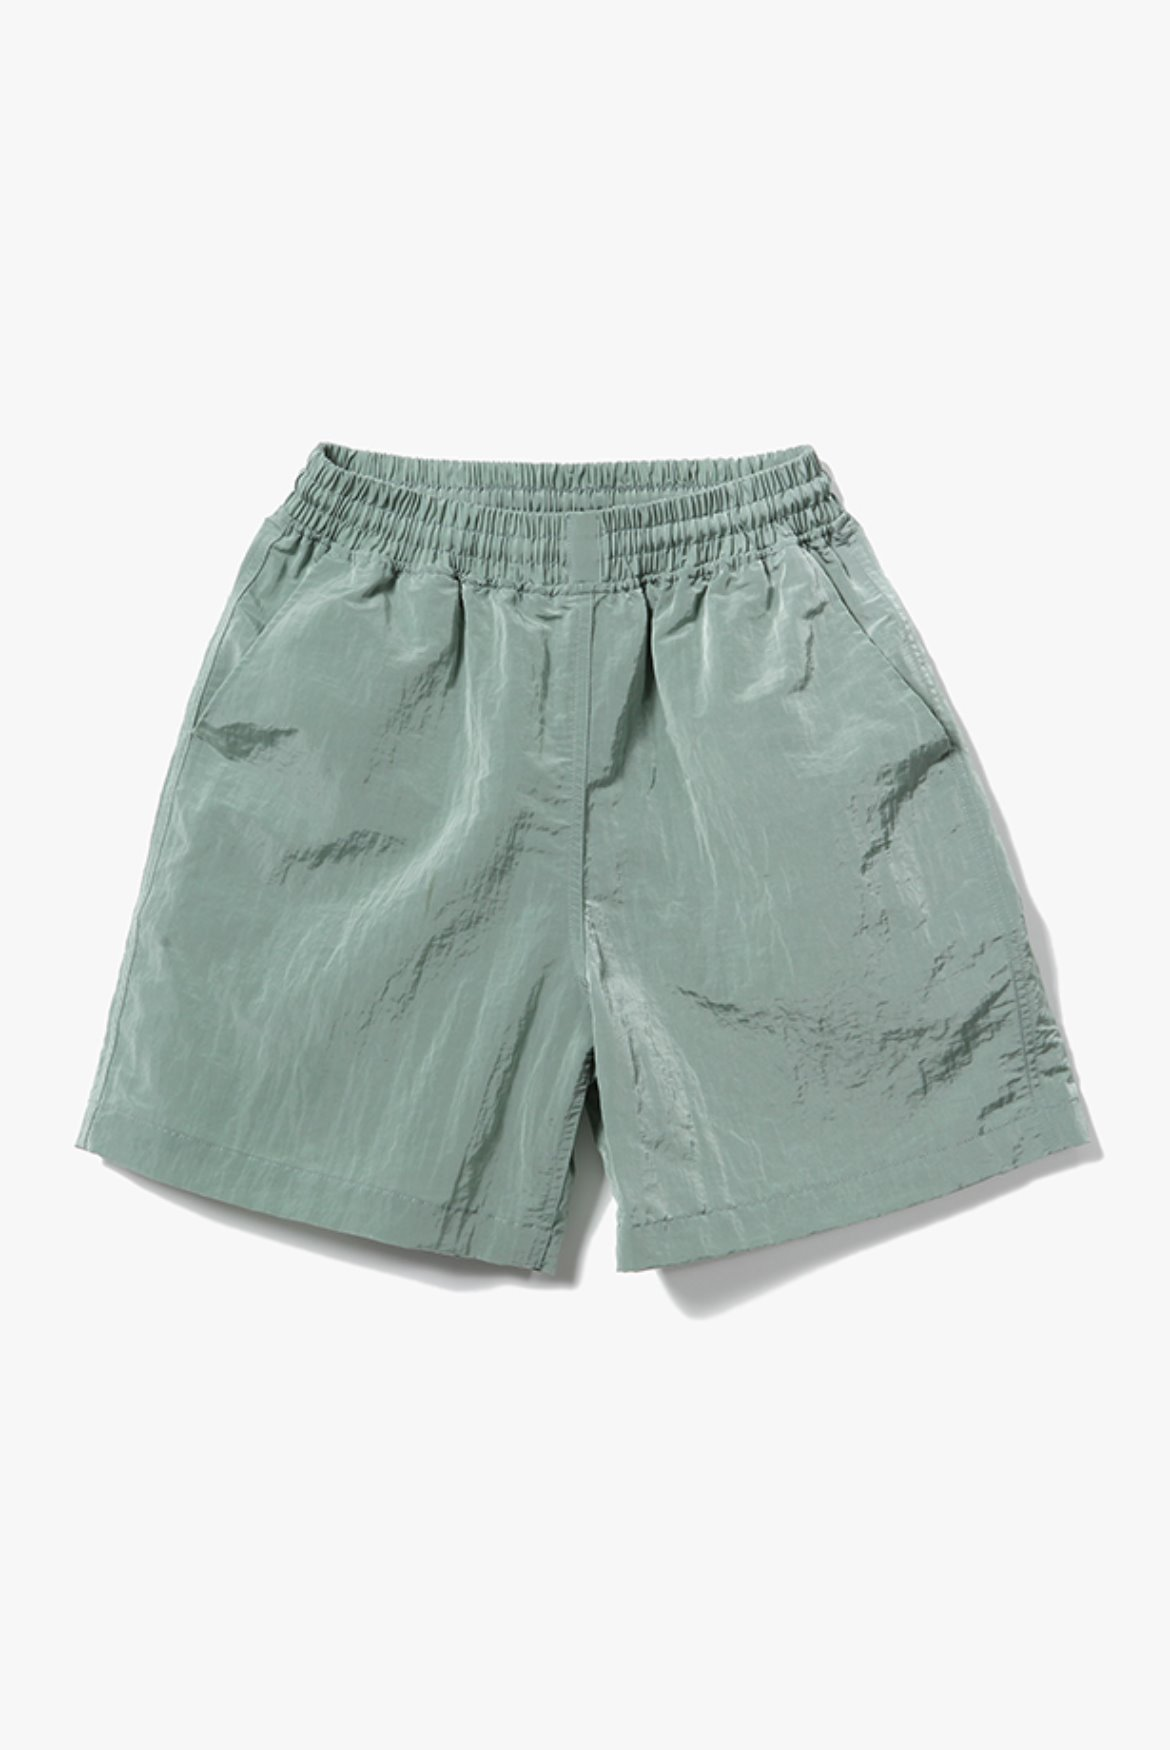 Metal Nylon Shorts [Mint]